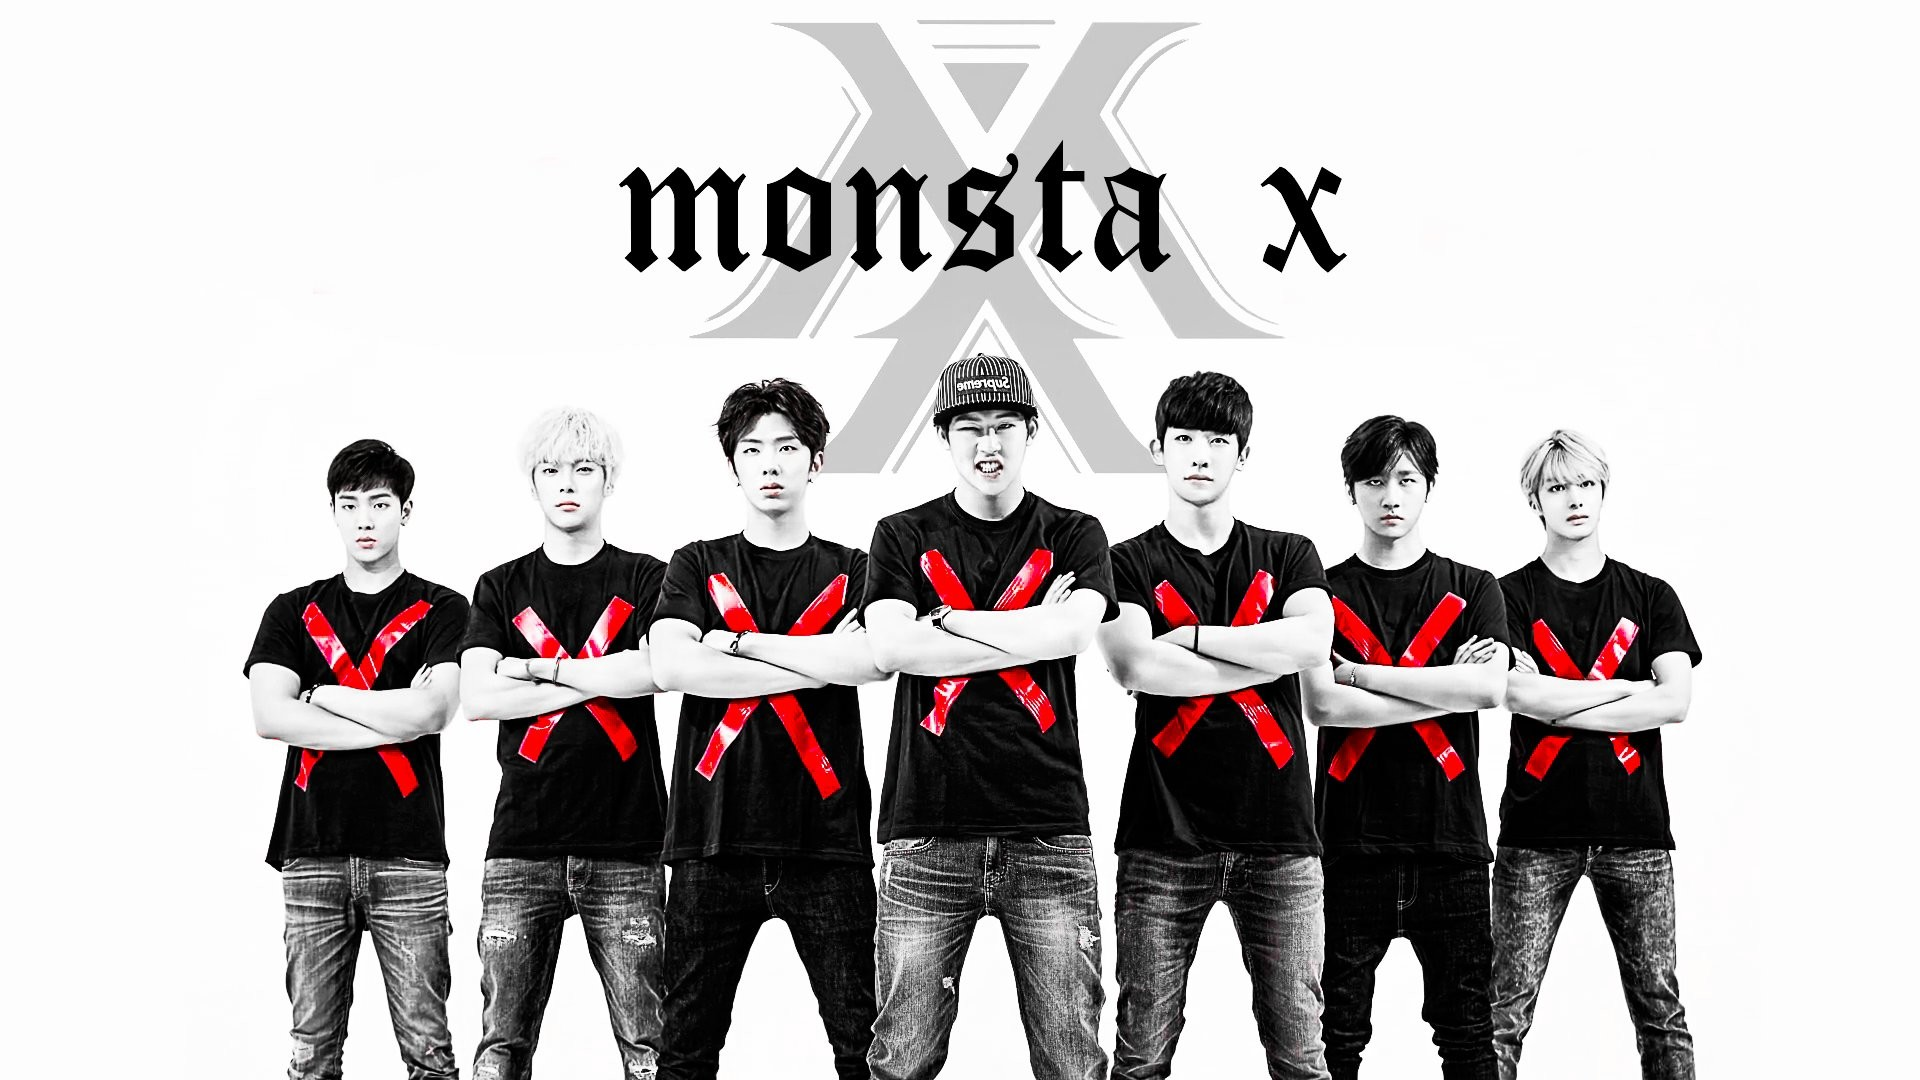 1920x1080 wallpaper.wiki-Monsta-X-Kpop-Background-PIC-WPD002086